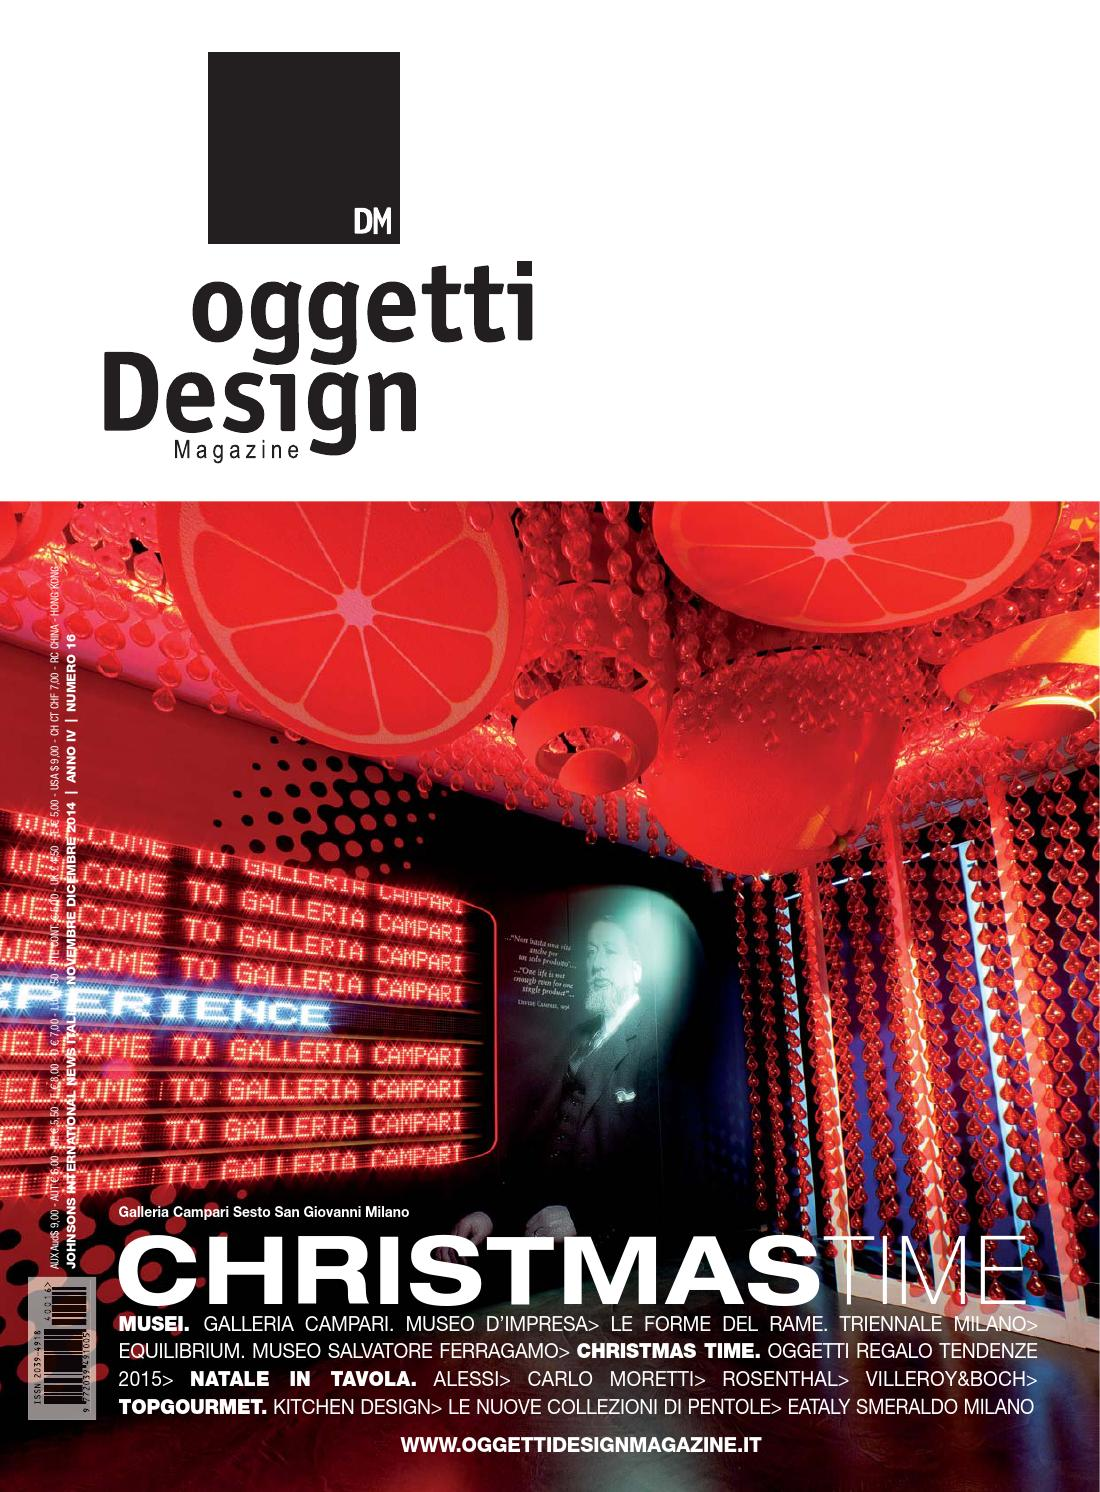 Dm oggetti design magazine by johnson web for Oggetti design online shop